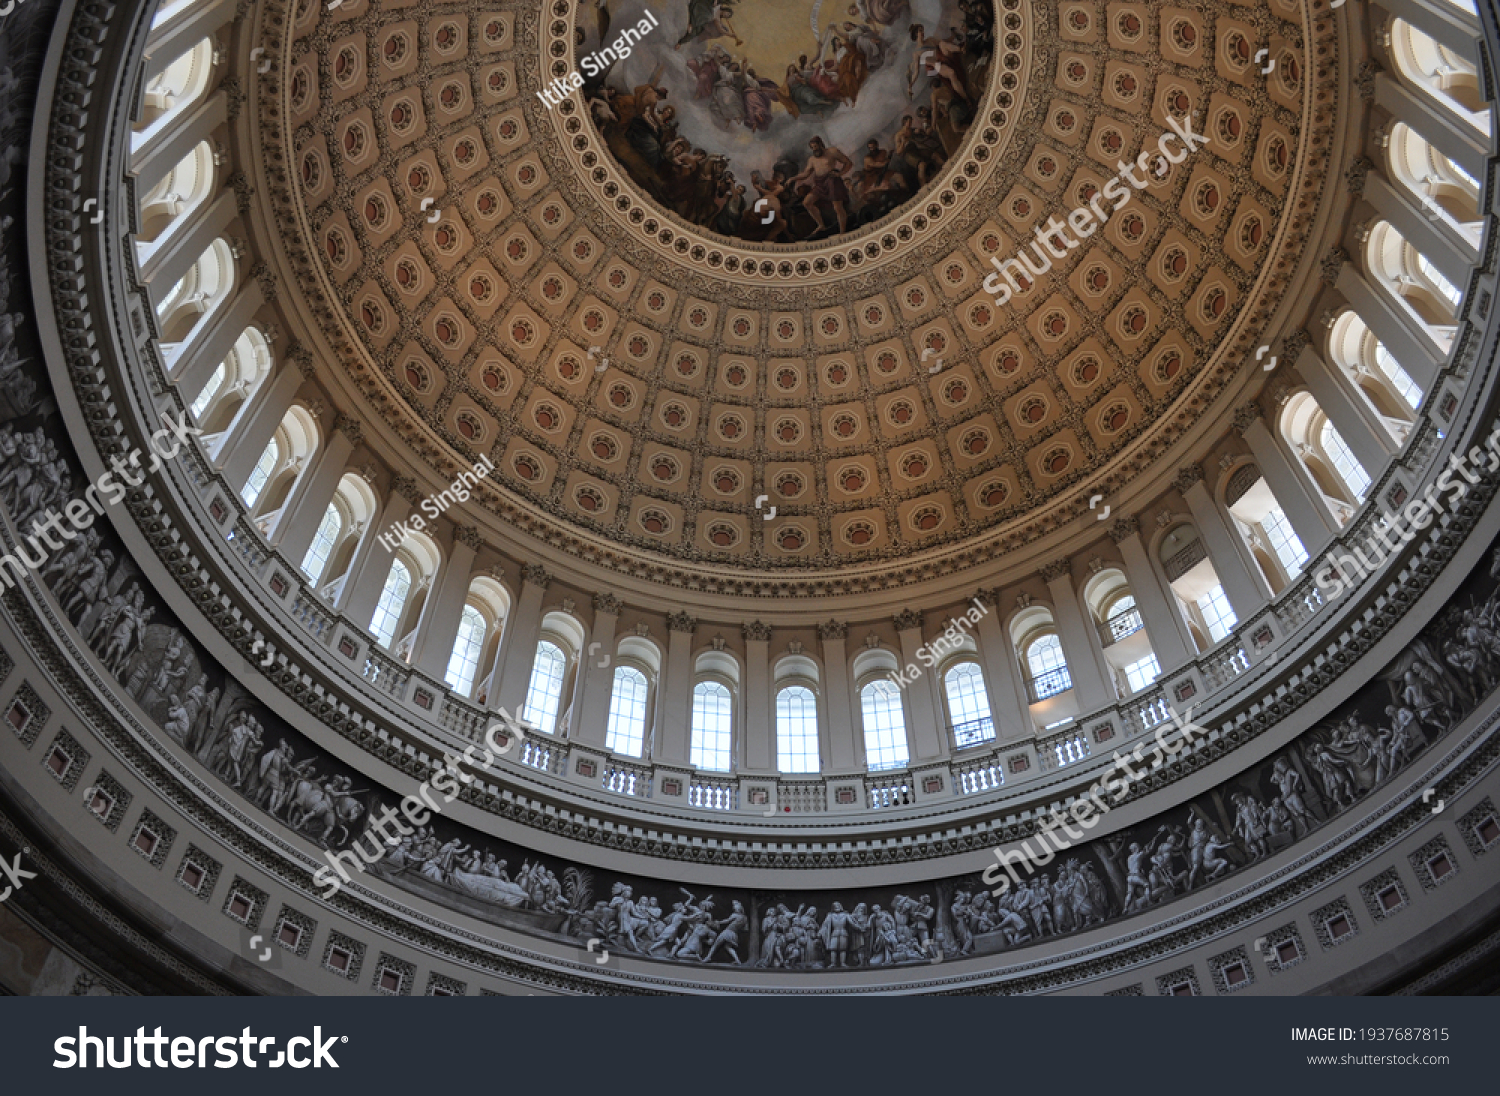 Dome of US Capitol hill situated above the rotunda of the building. Apotheosis of Washington is a fresco Constantino Brumidi. Dome has beautiful architecture and sculptures as well. #1937687815